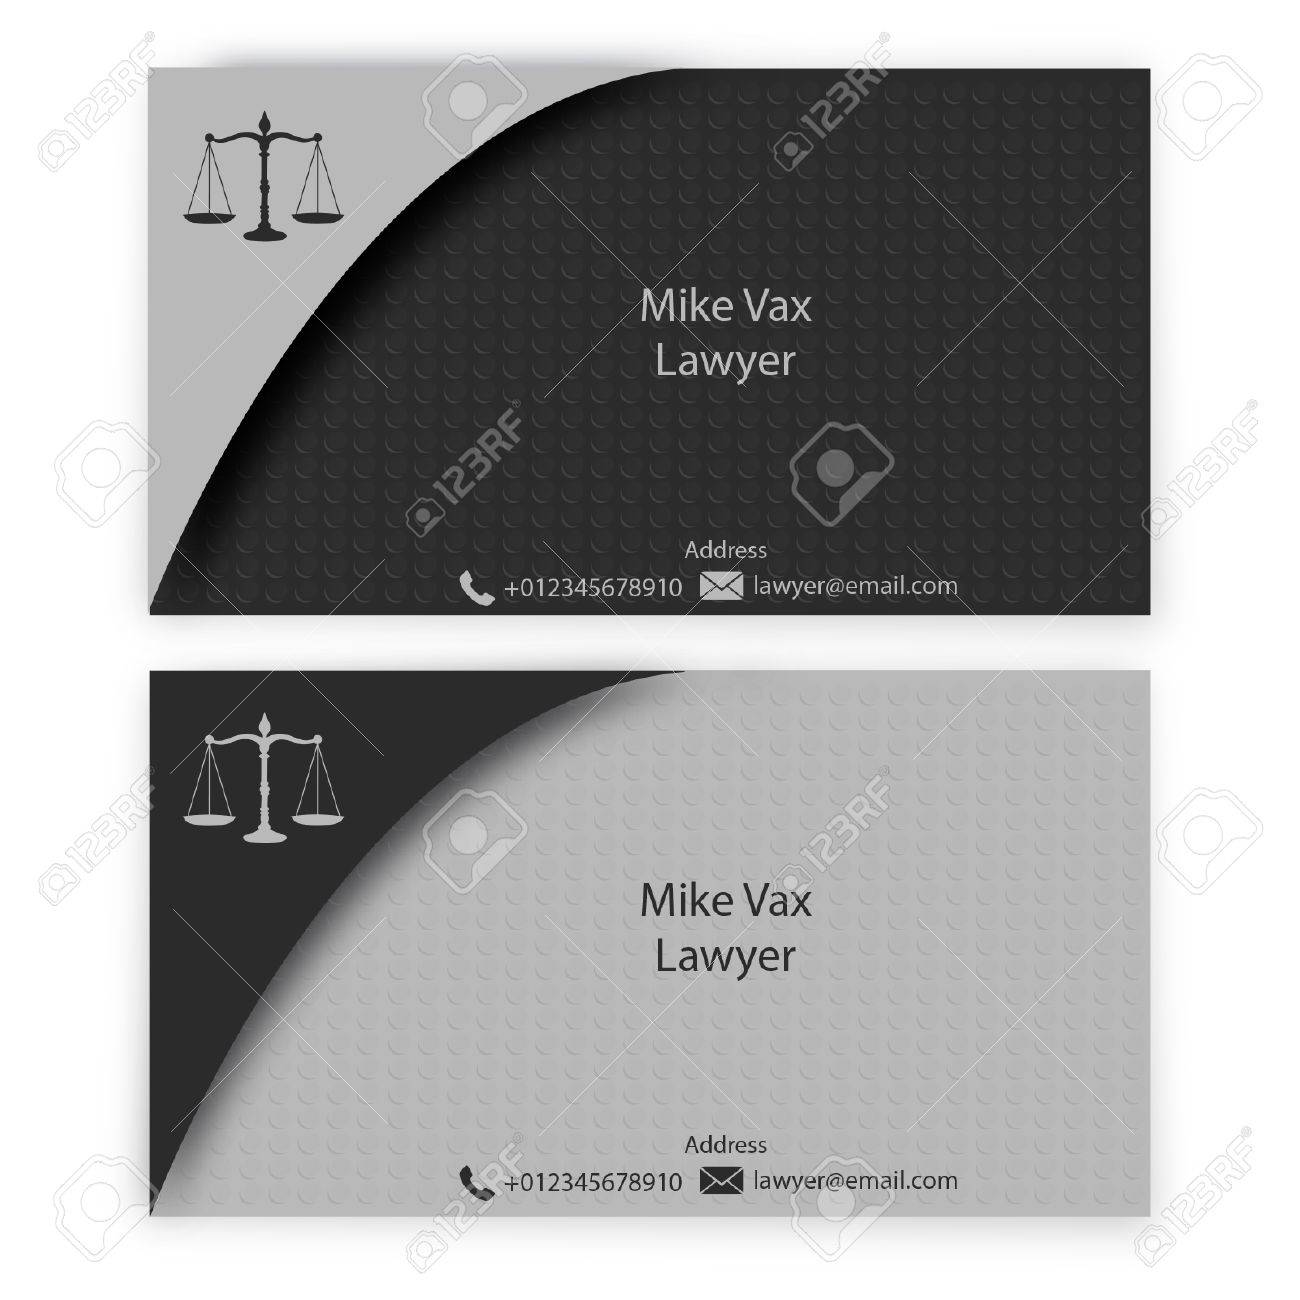 Lawyer Business Card Royalty Free Cliparts, Vectors, And Stock ...